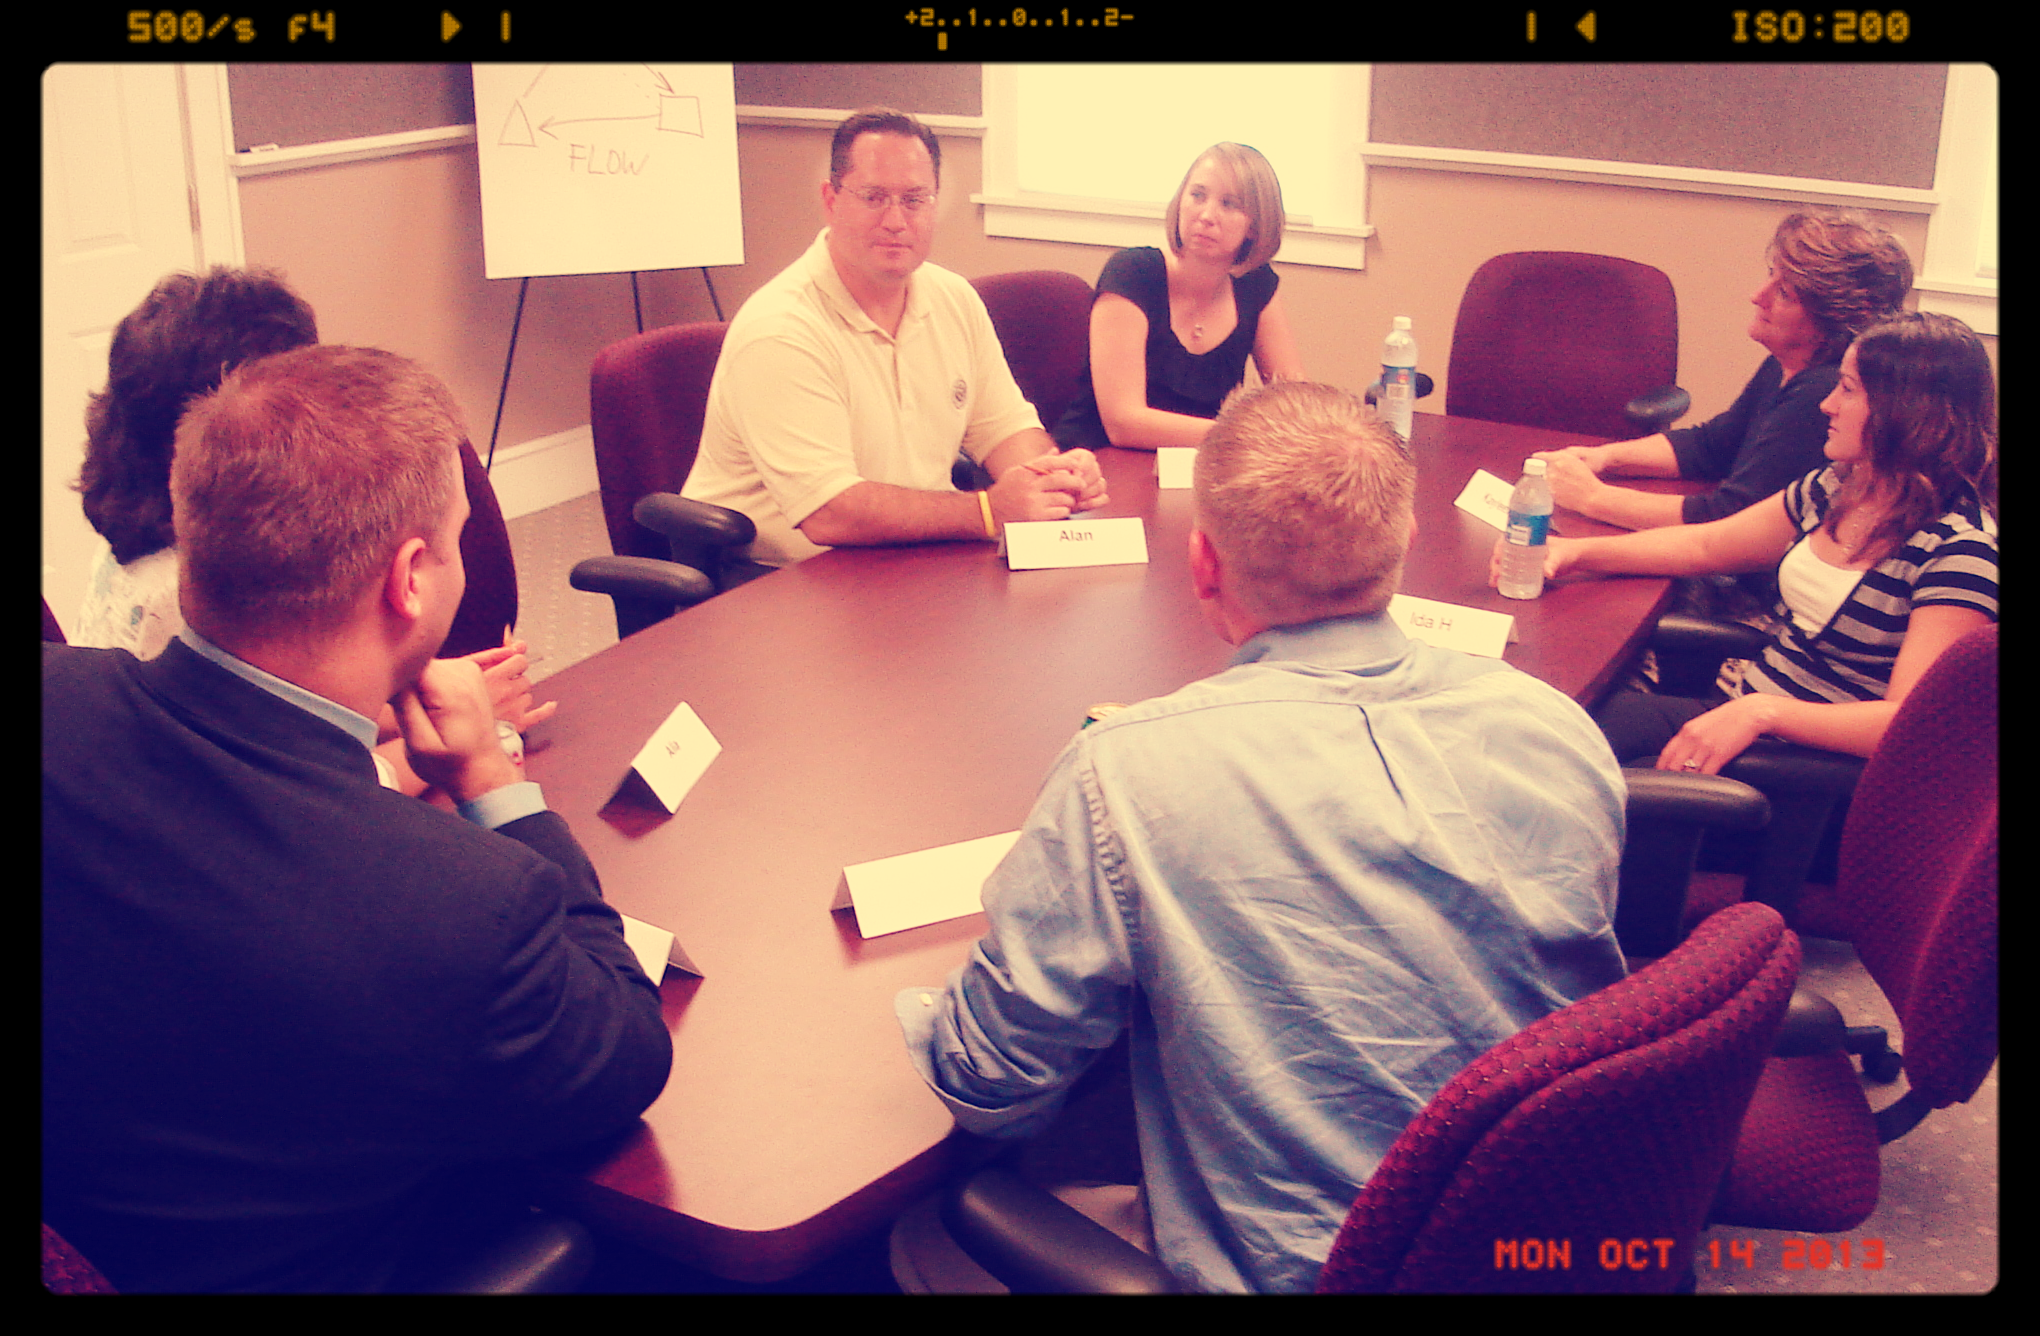 Stakeholder Interviews: Success begin with all team members engaged and moving in the same direction.